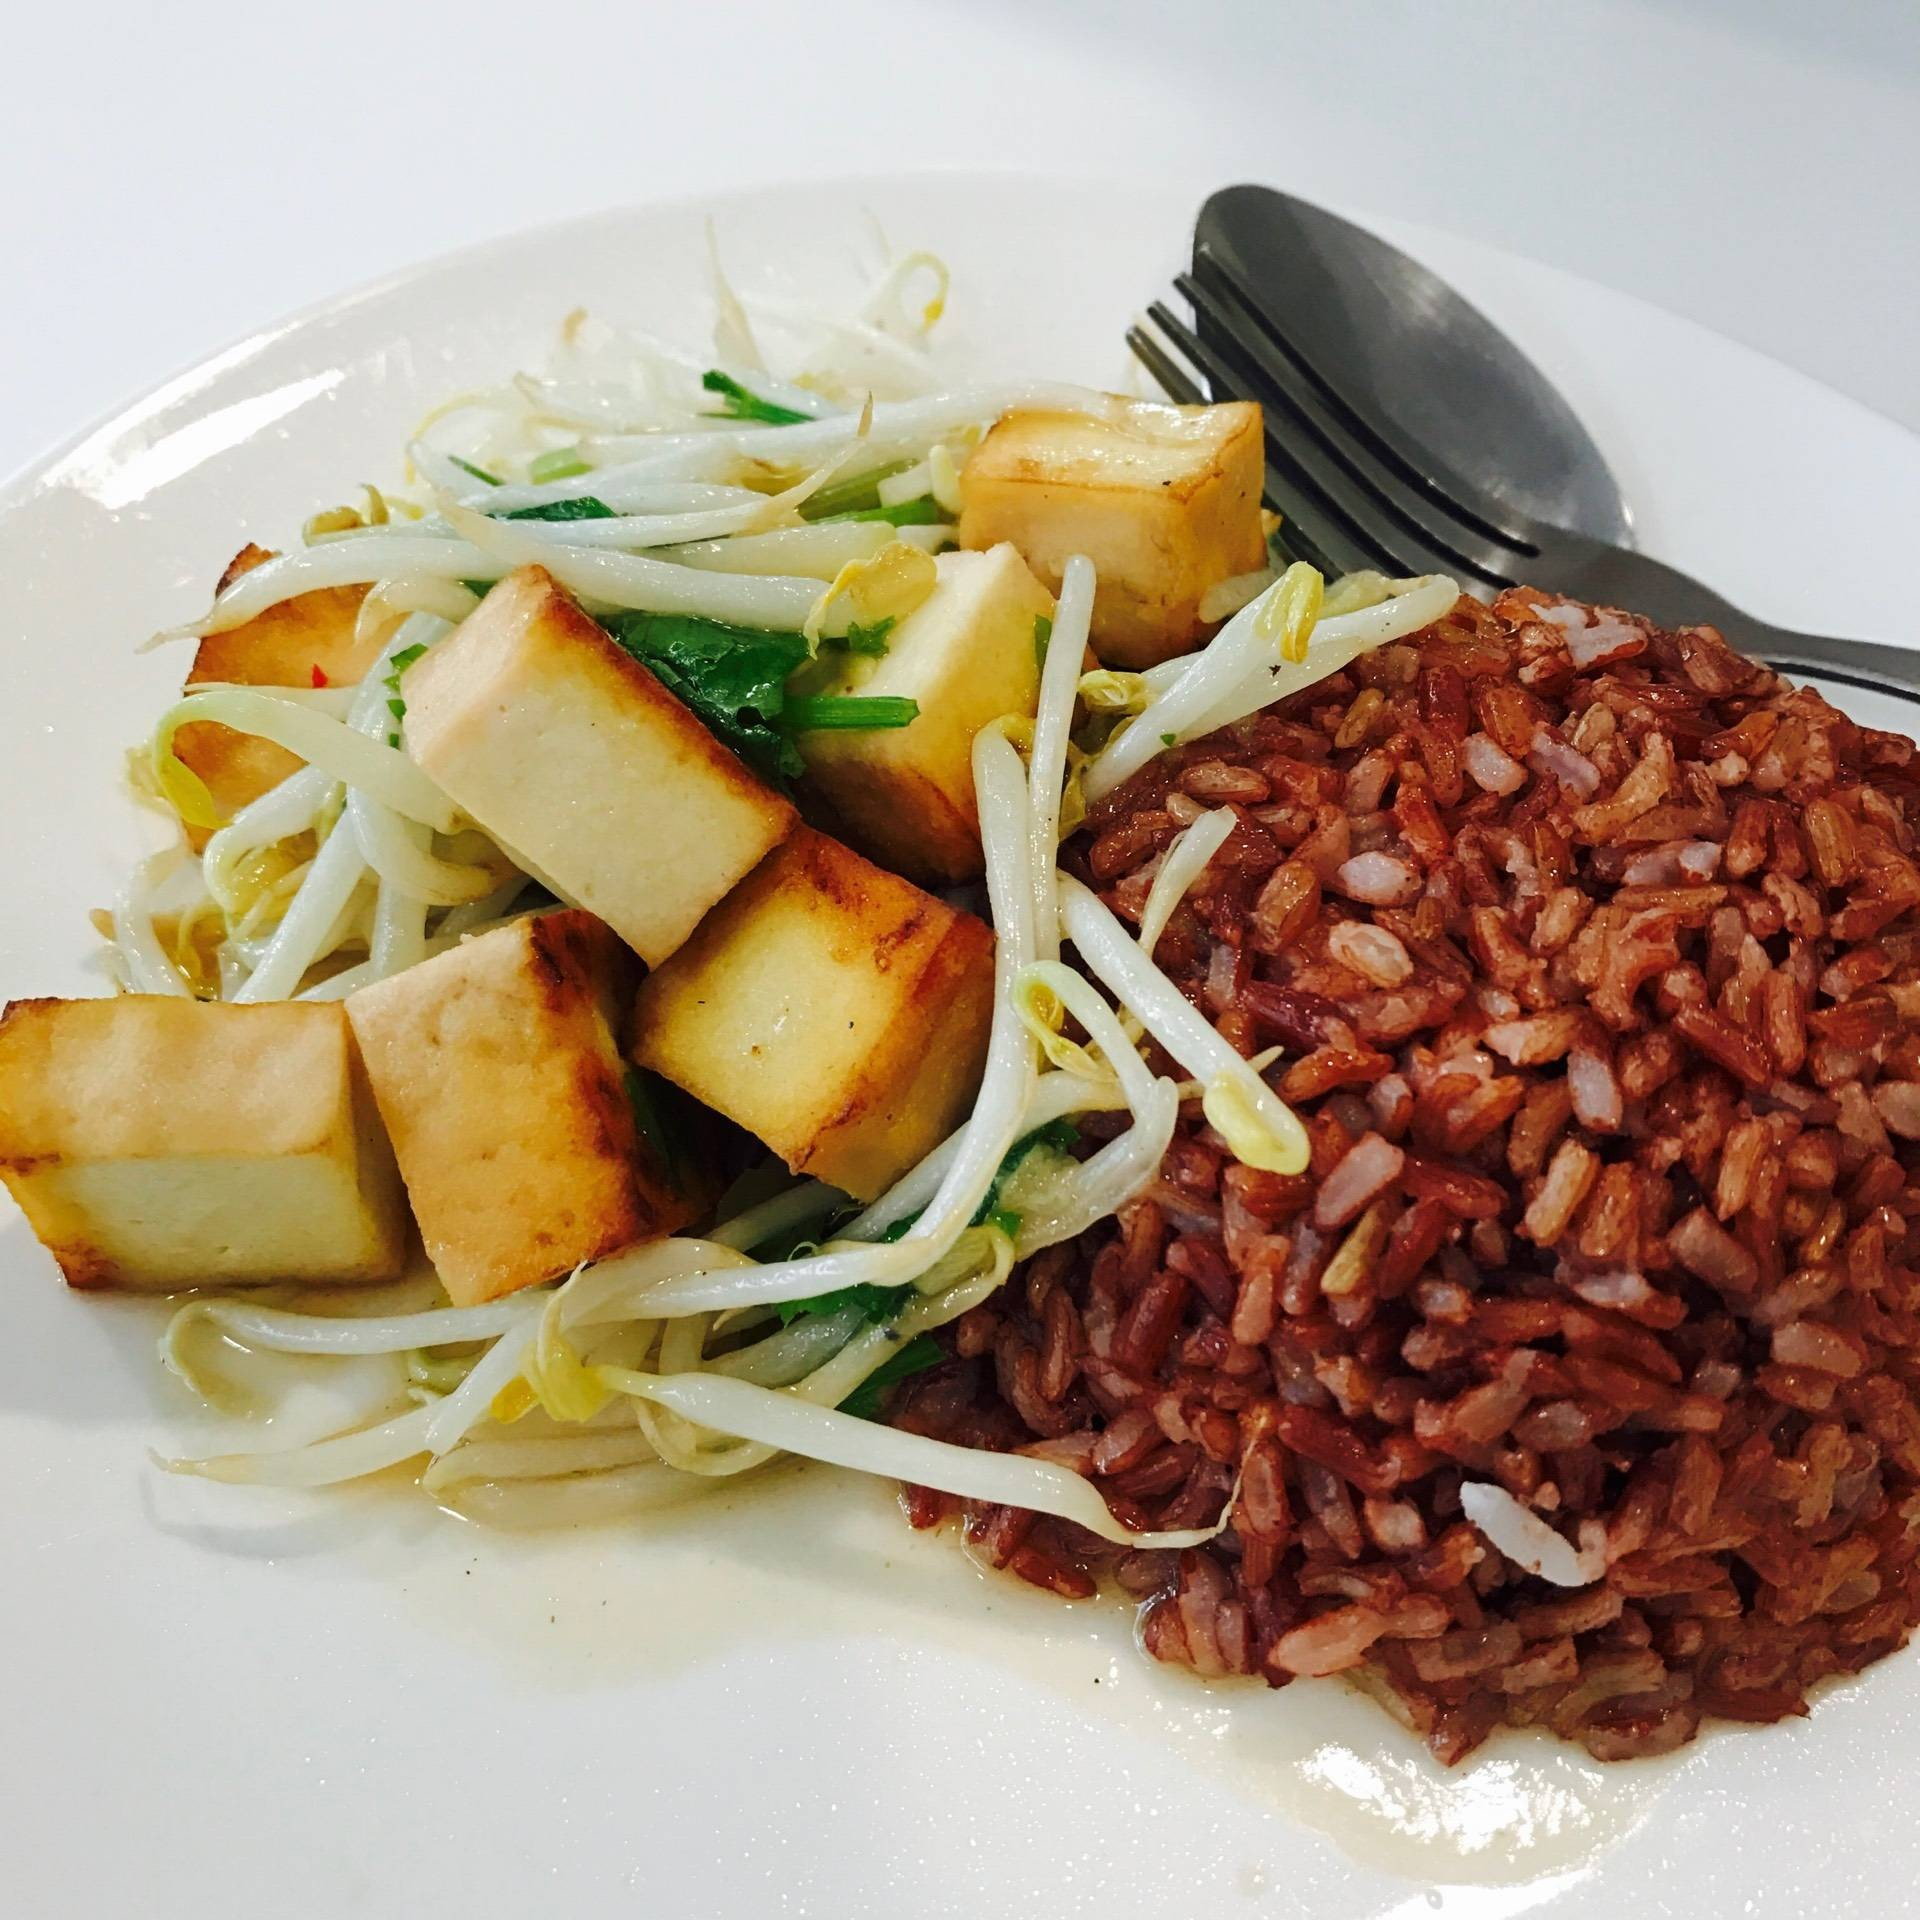 The Rice & Healthy Food ปิ่นเกล้า